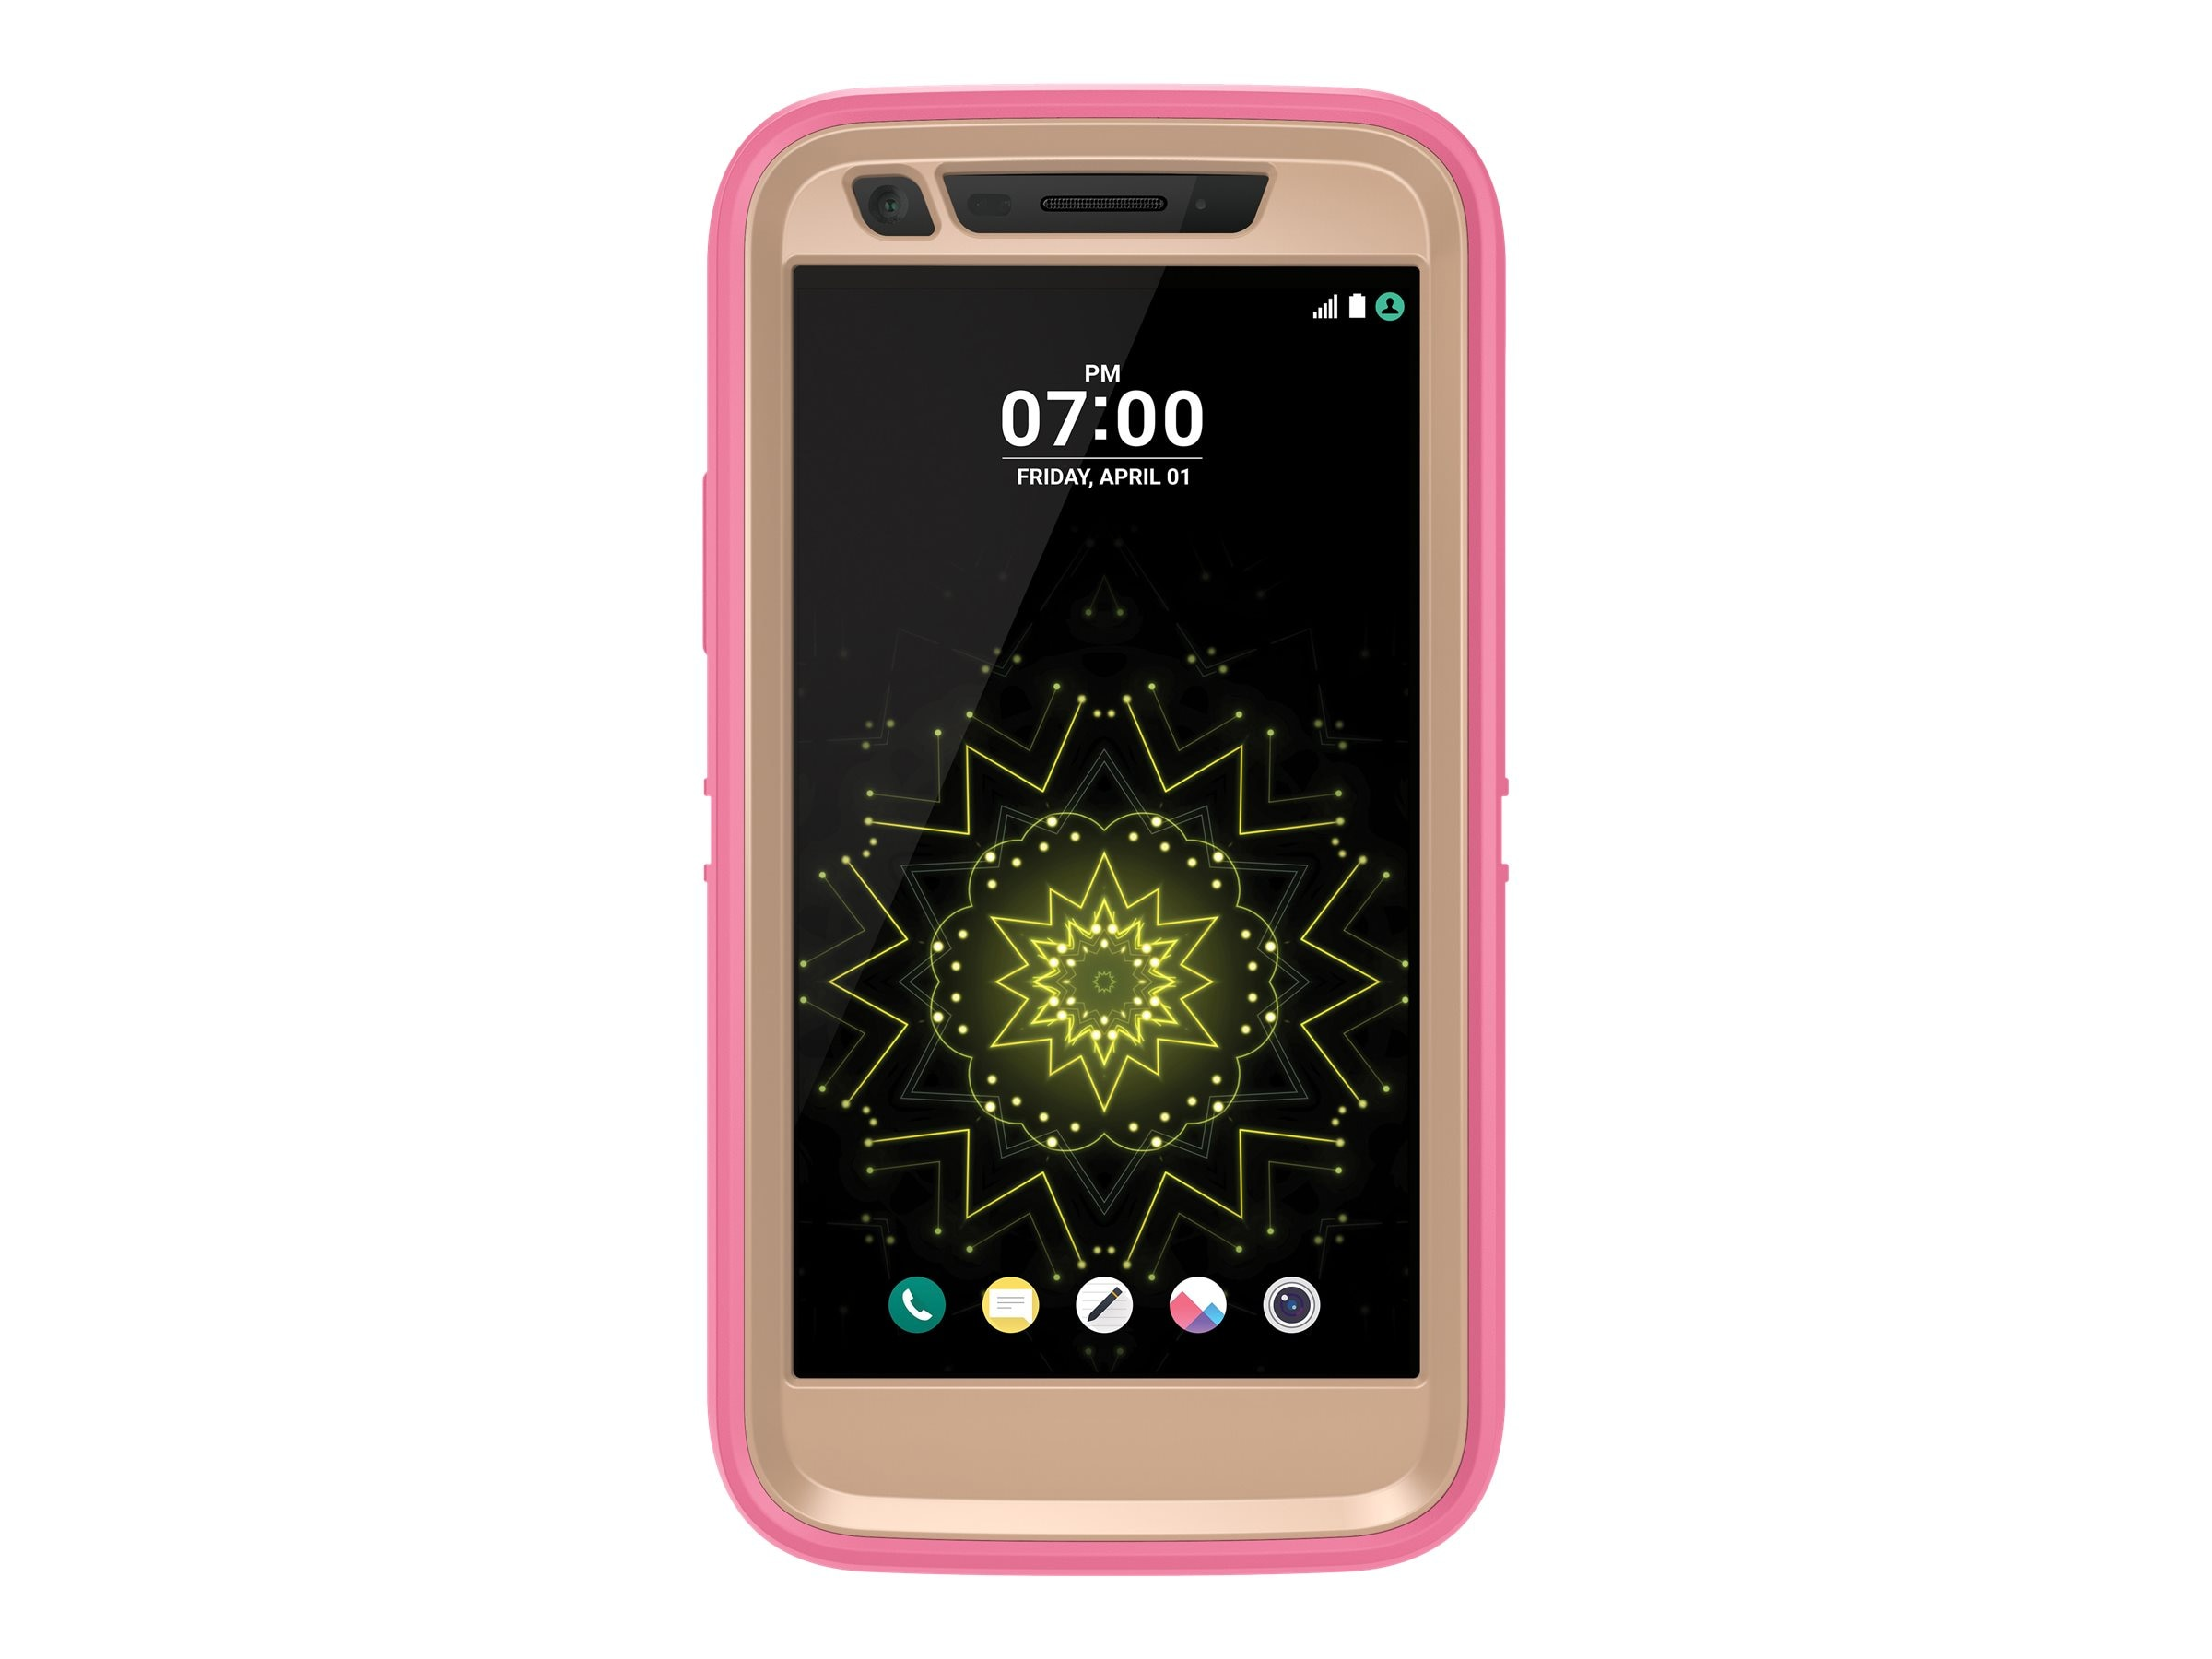 OtterBox Defender for LG, Berries n Cream, 77-53350, 31498711, Carrying Cases - Phones/PDAs